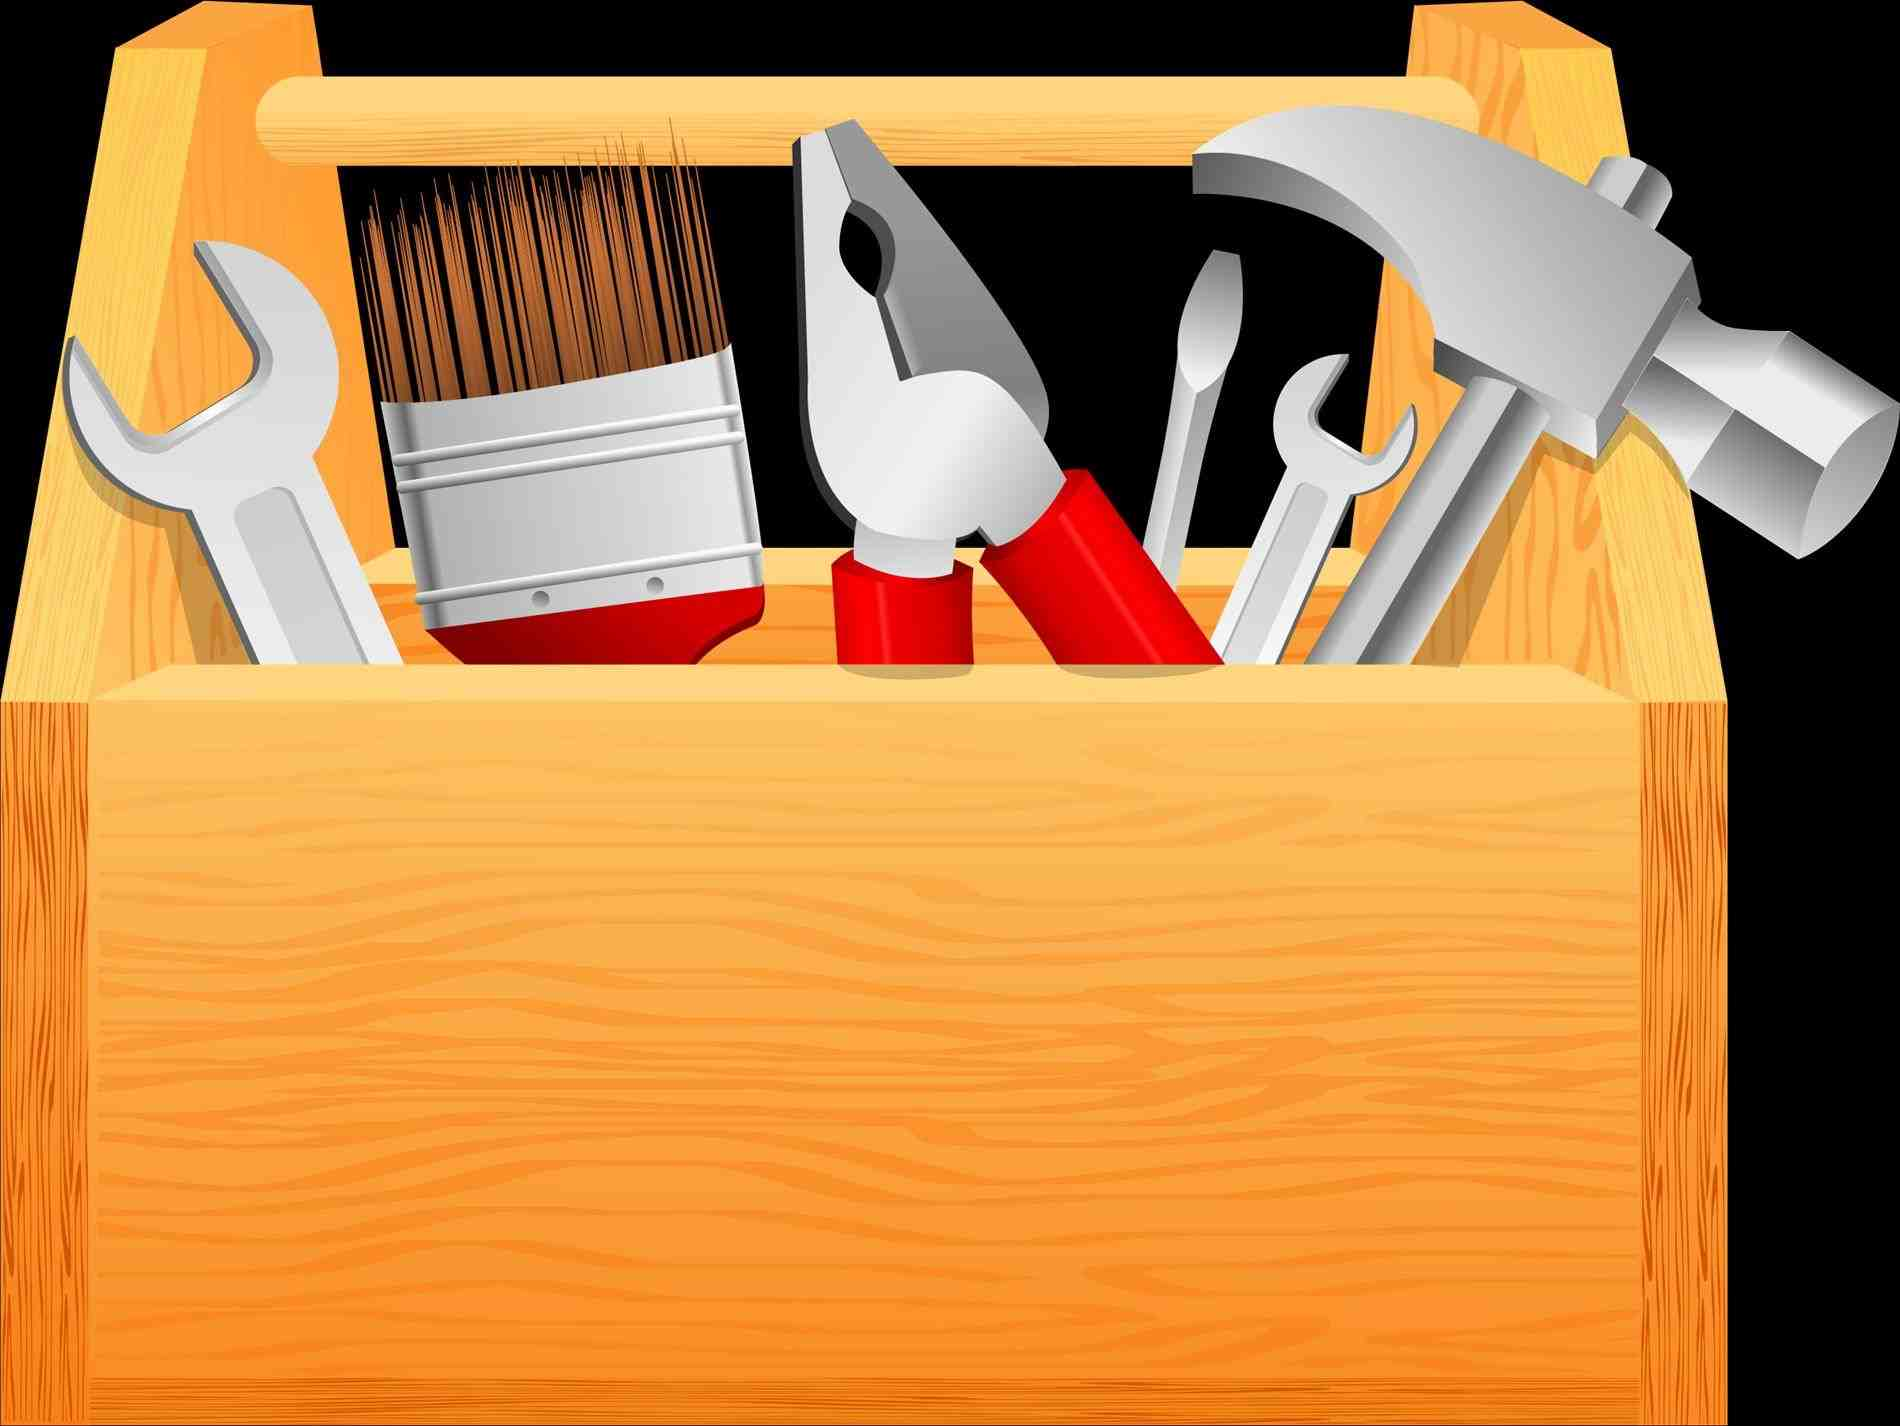 Toolbox clipart. The images collection of